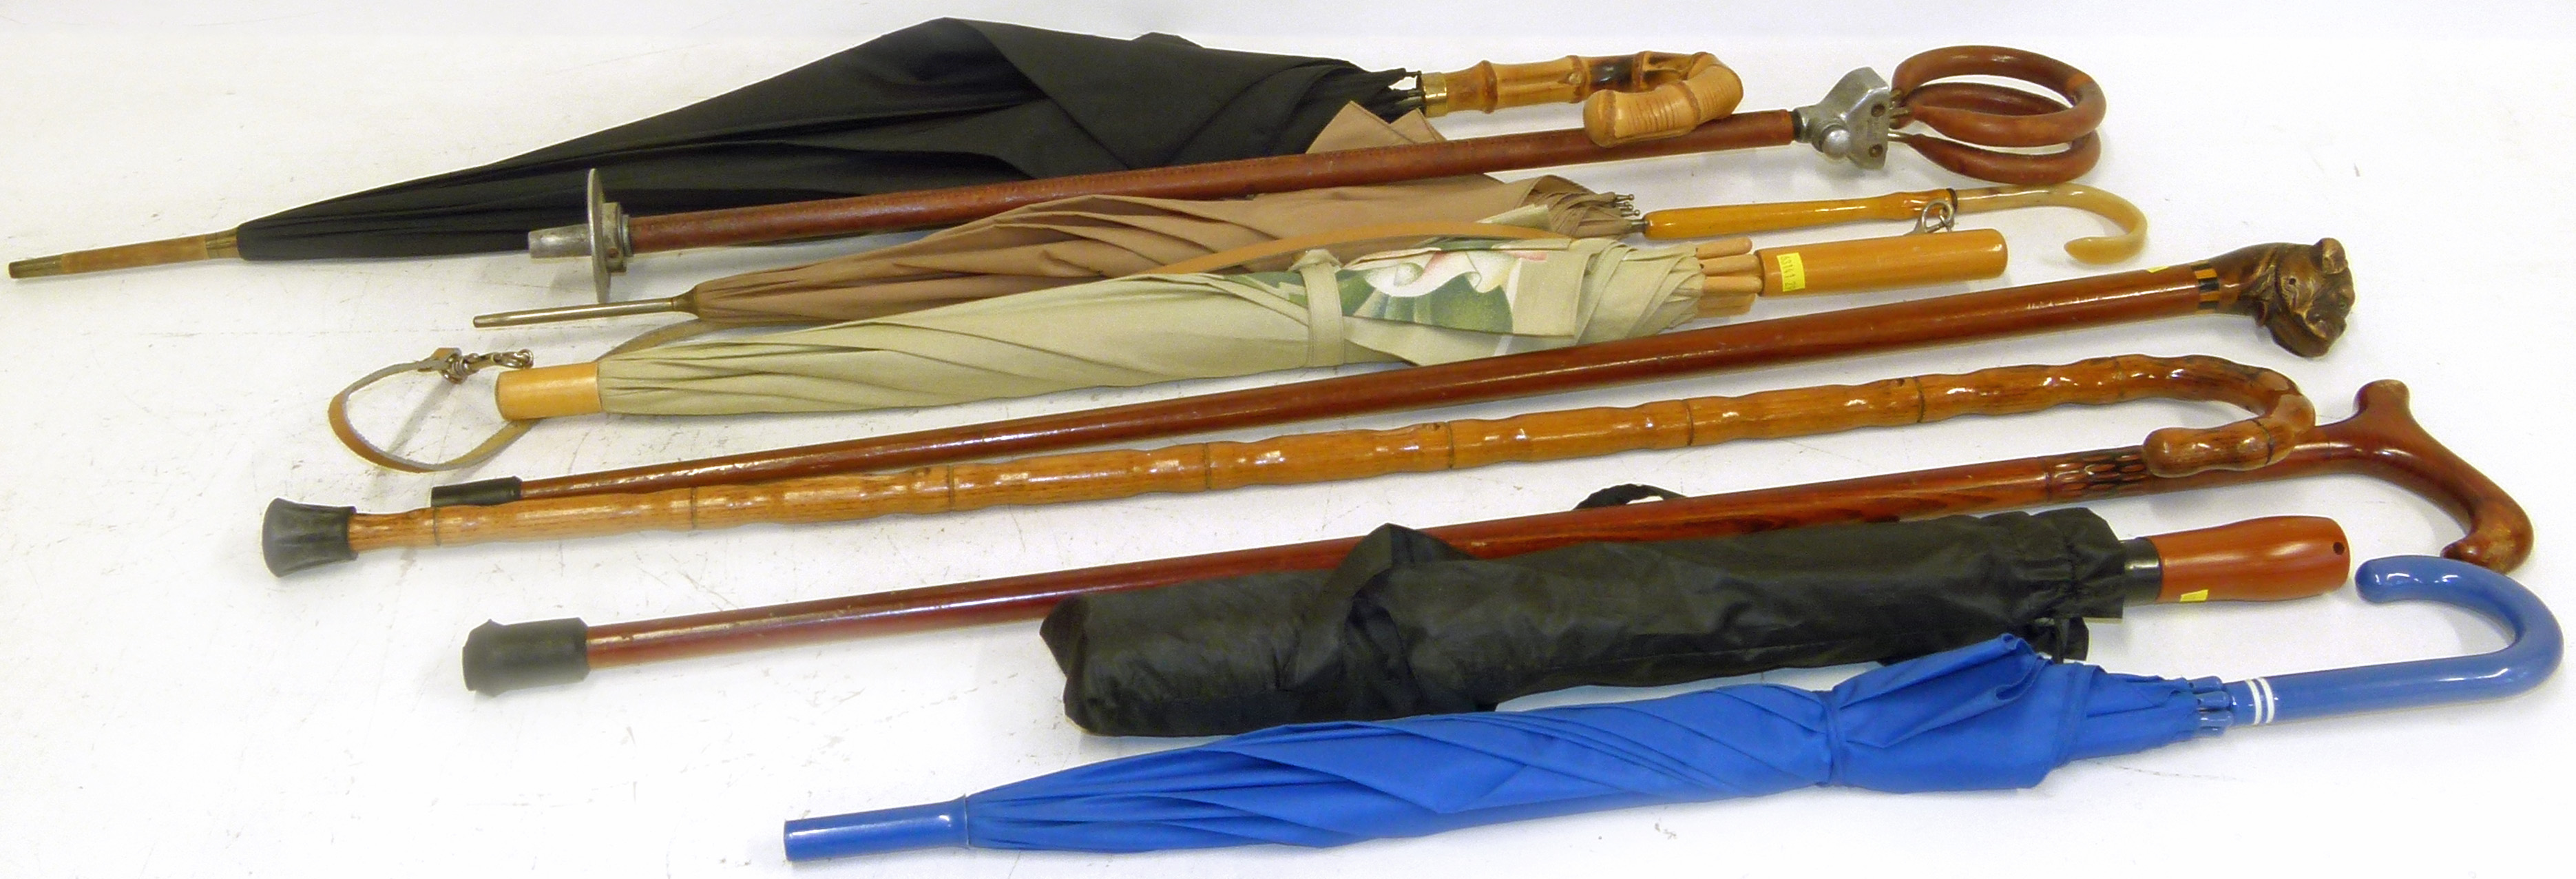 Lot 60 - Middlemores Seatanstic shooting stick, walking stick with hand carved English Boxer top and 7